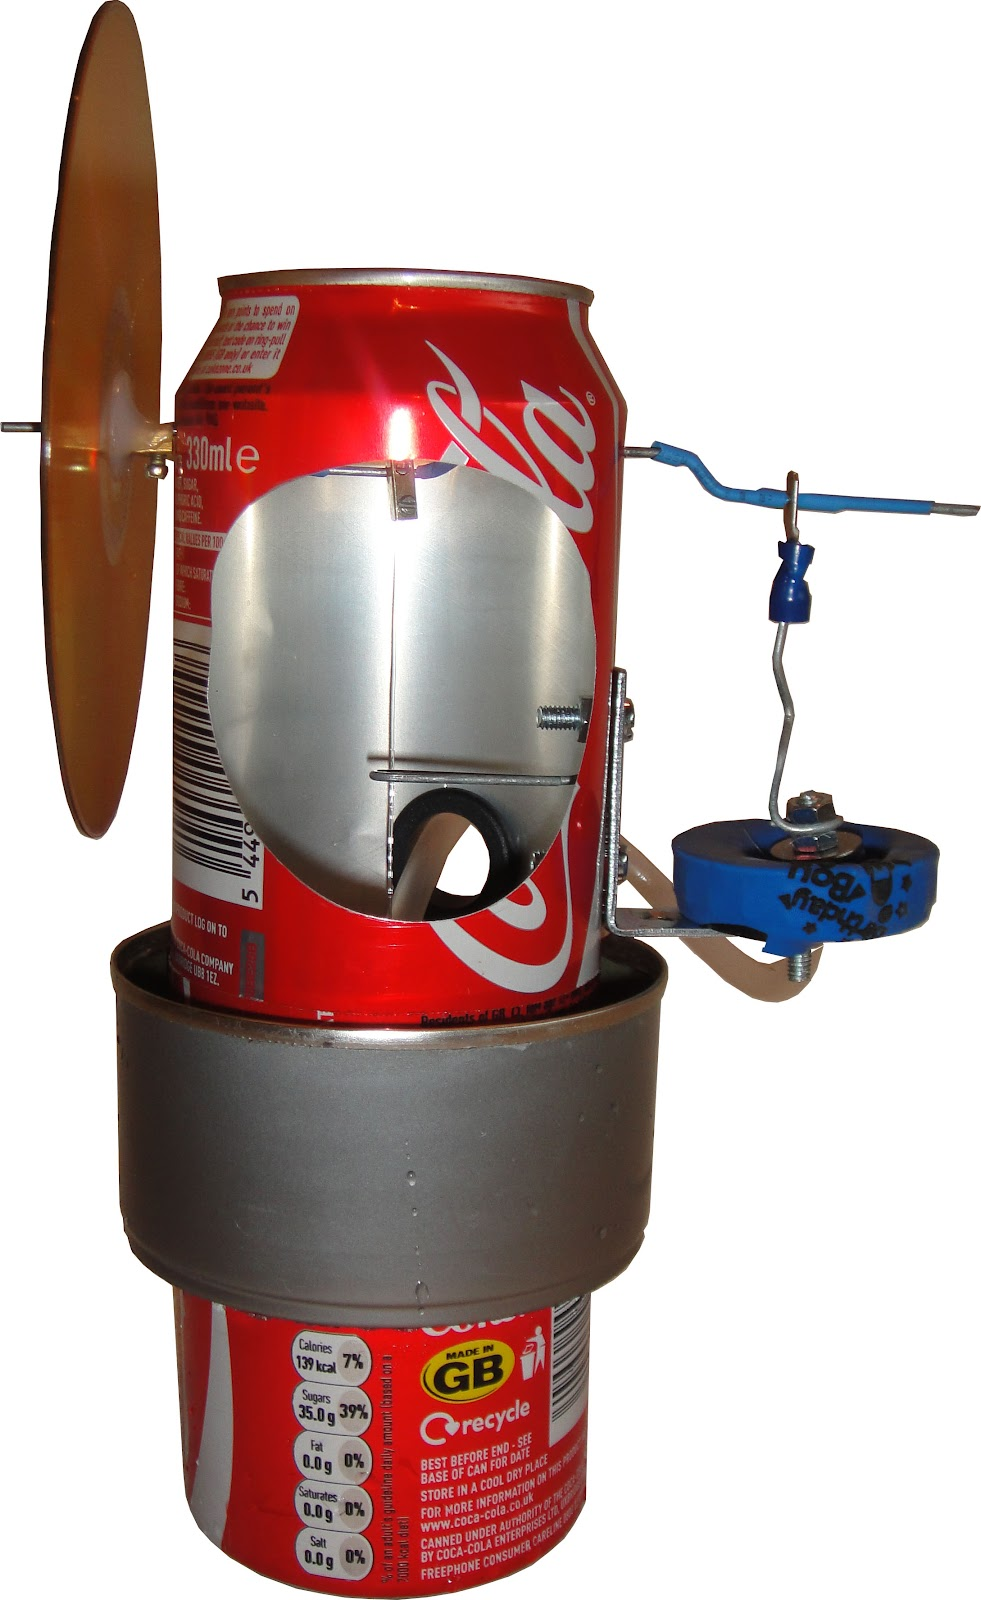 coke can stirling engine sale scrap to power